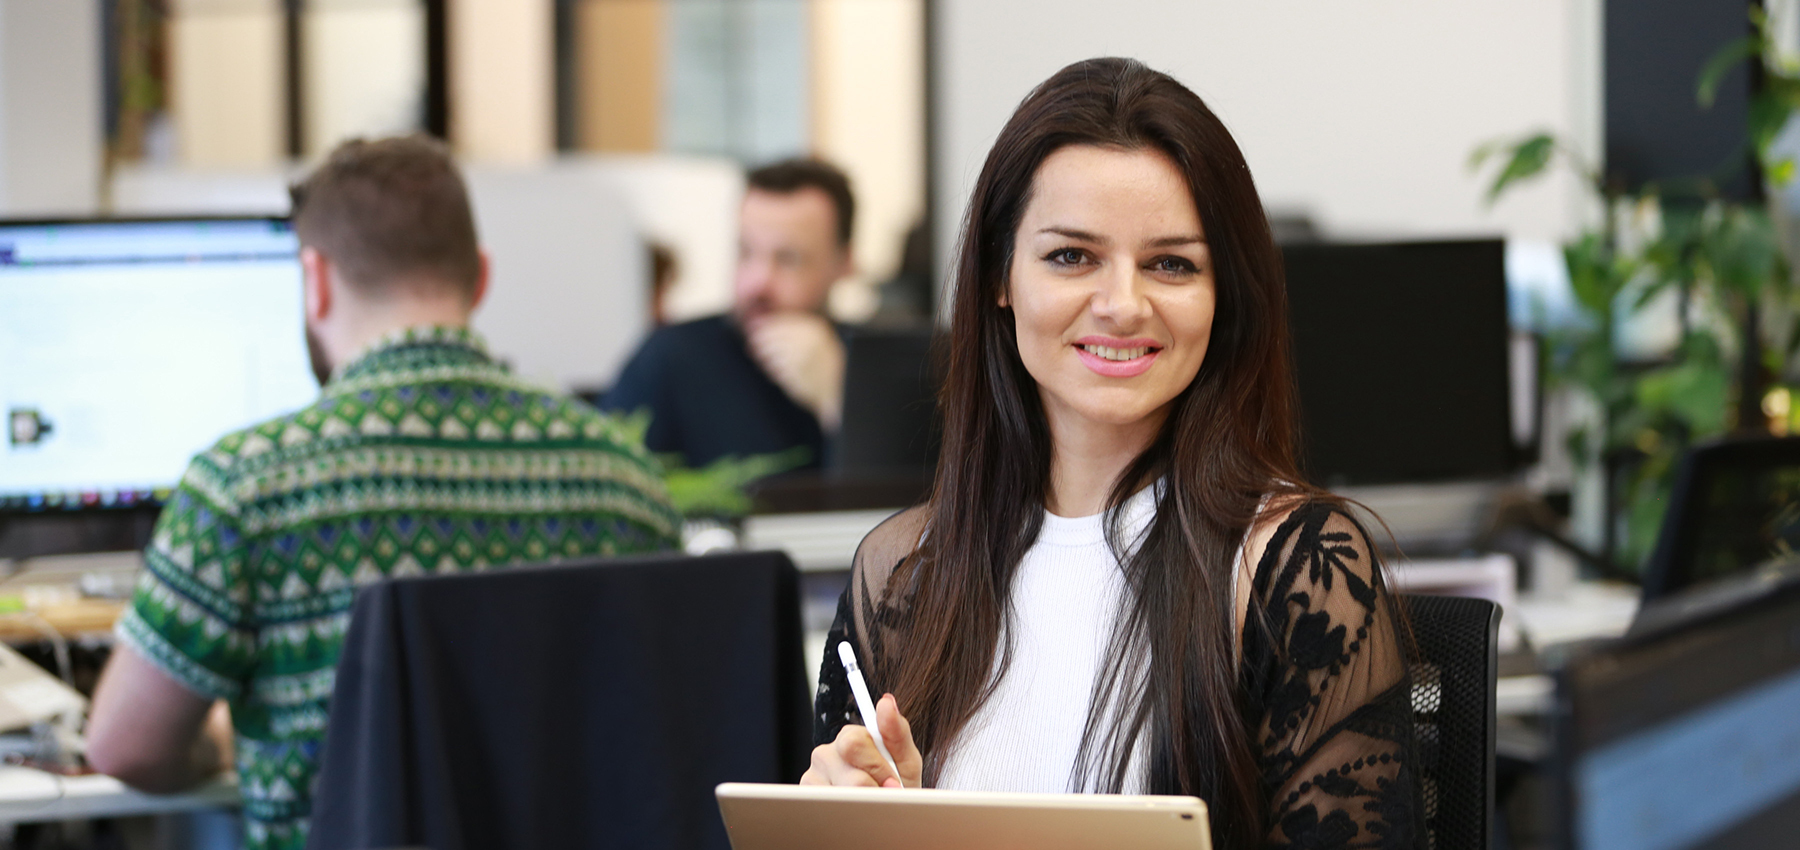 Maryam Sadeghi sits at a desk in the foreground of a busy tech office. she smiles confidently, holding a stylus in one hand and tablet in the other.